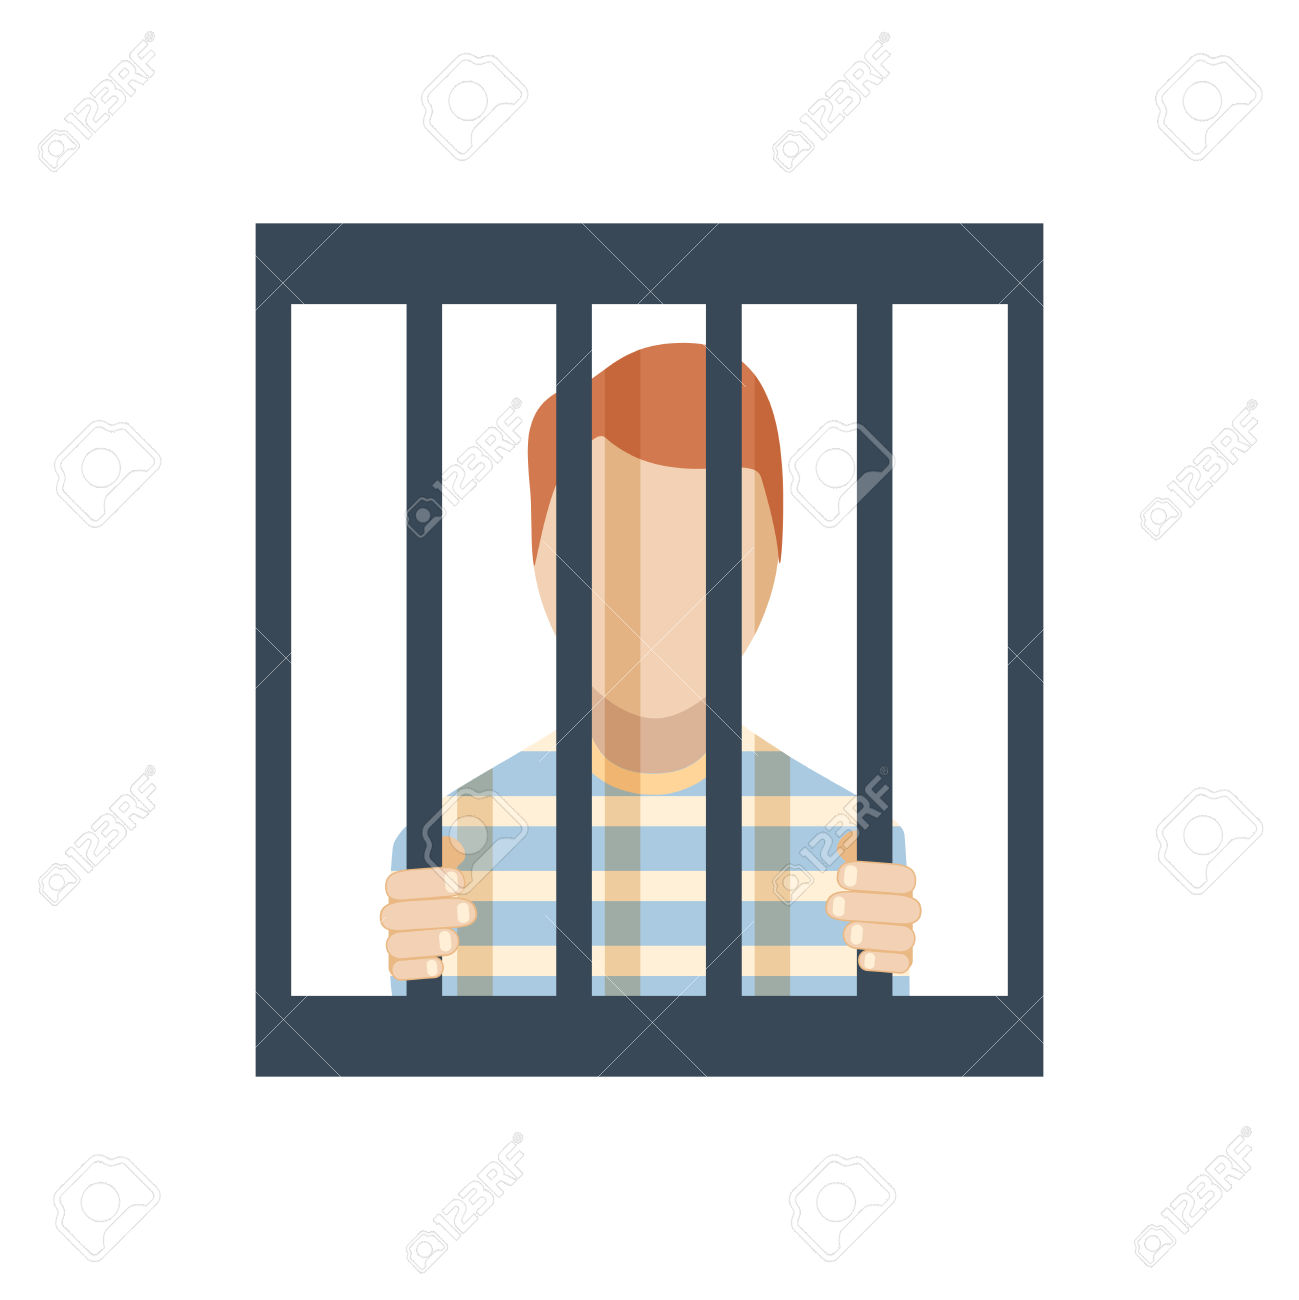 Flat Design Jail Inmate Behind Bars Icon Vector Illustration.